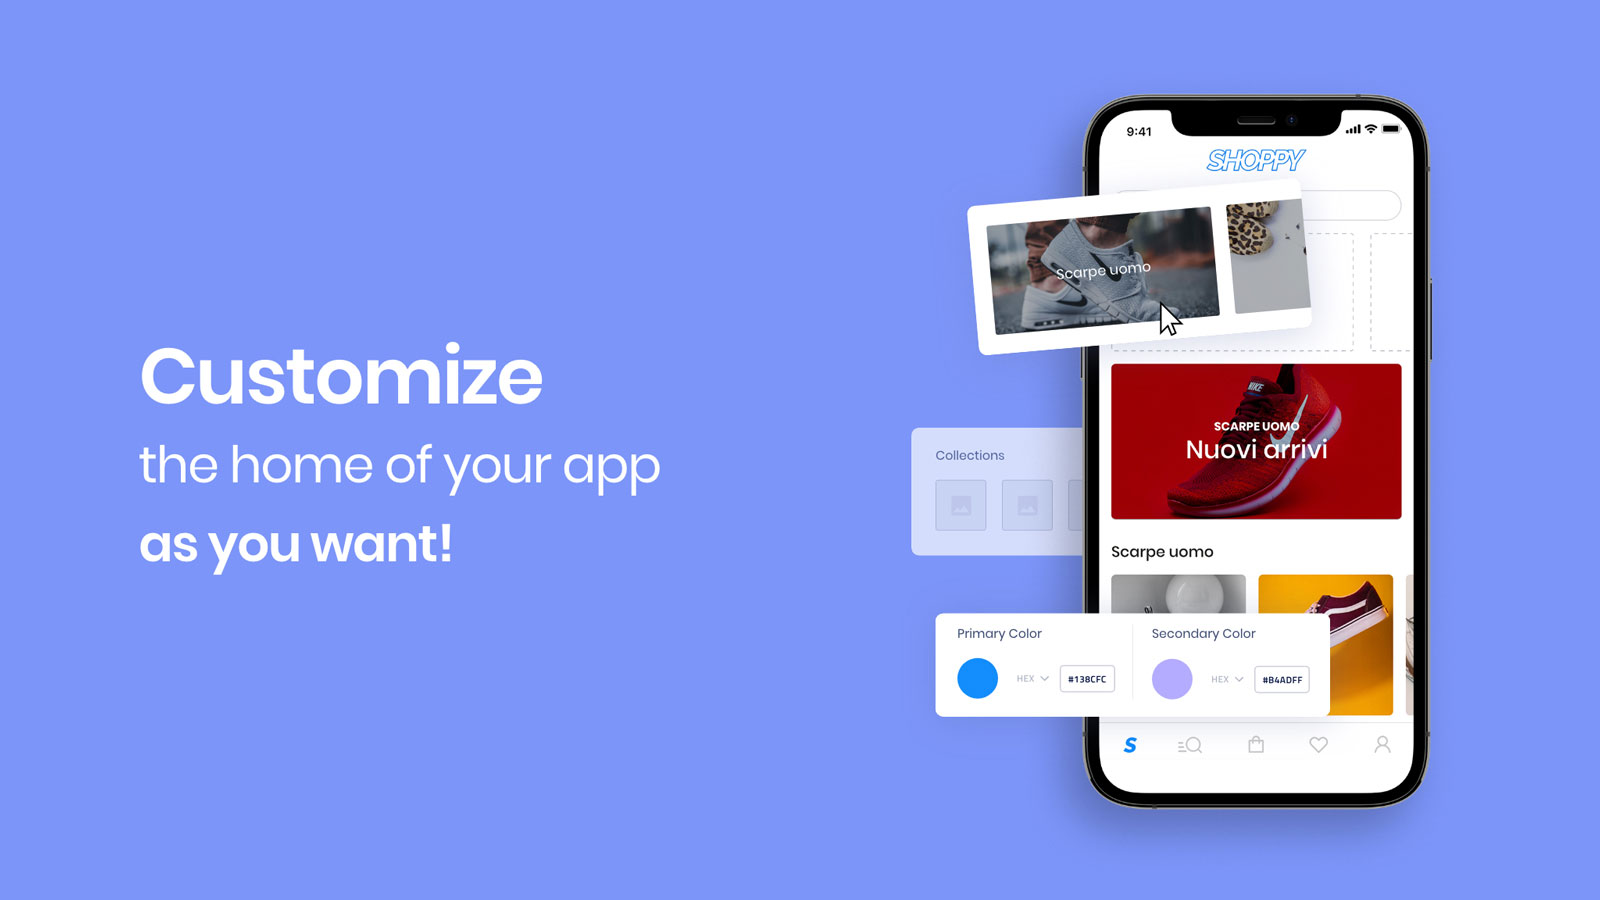 Customize the home of your app as you want!